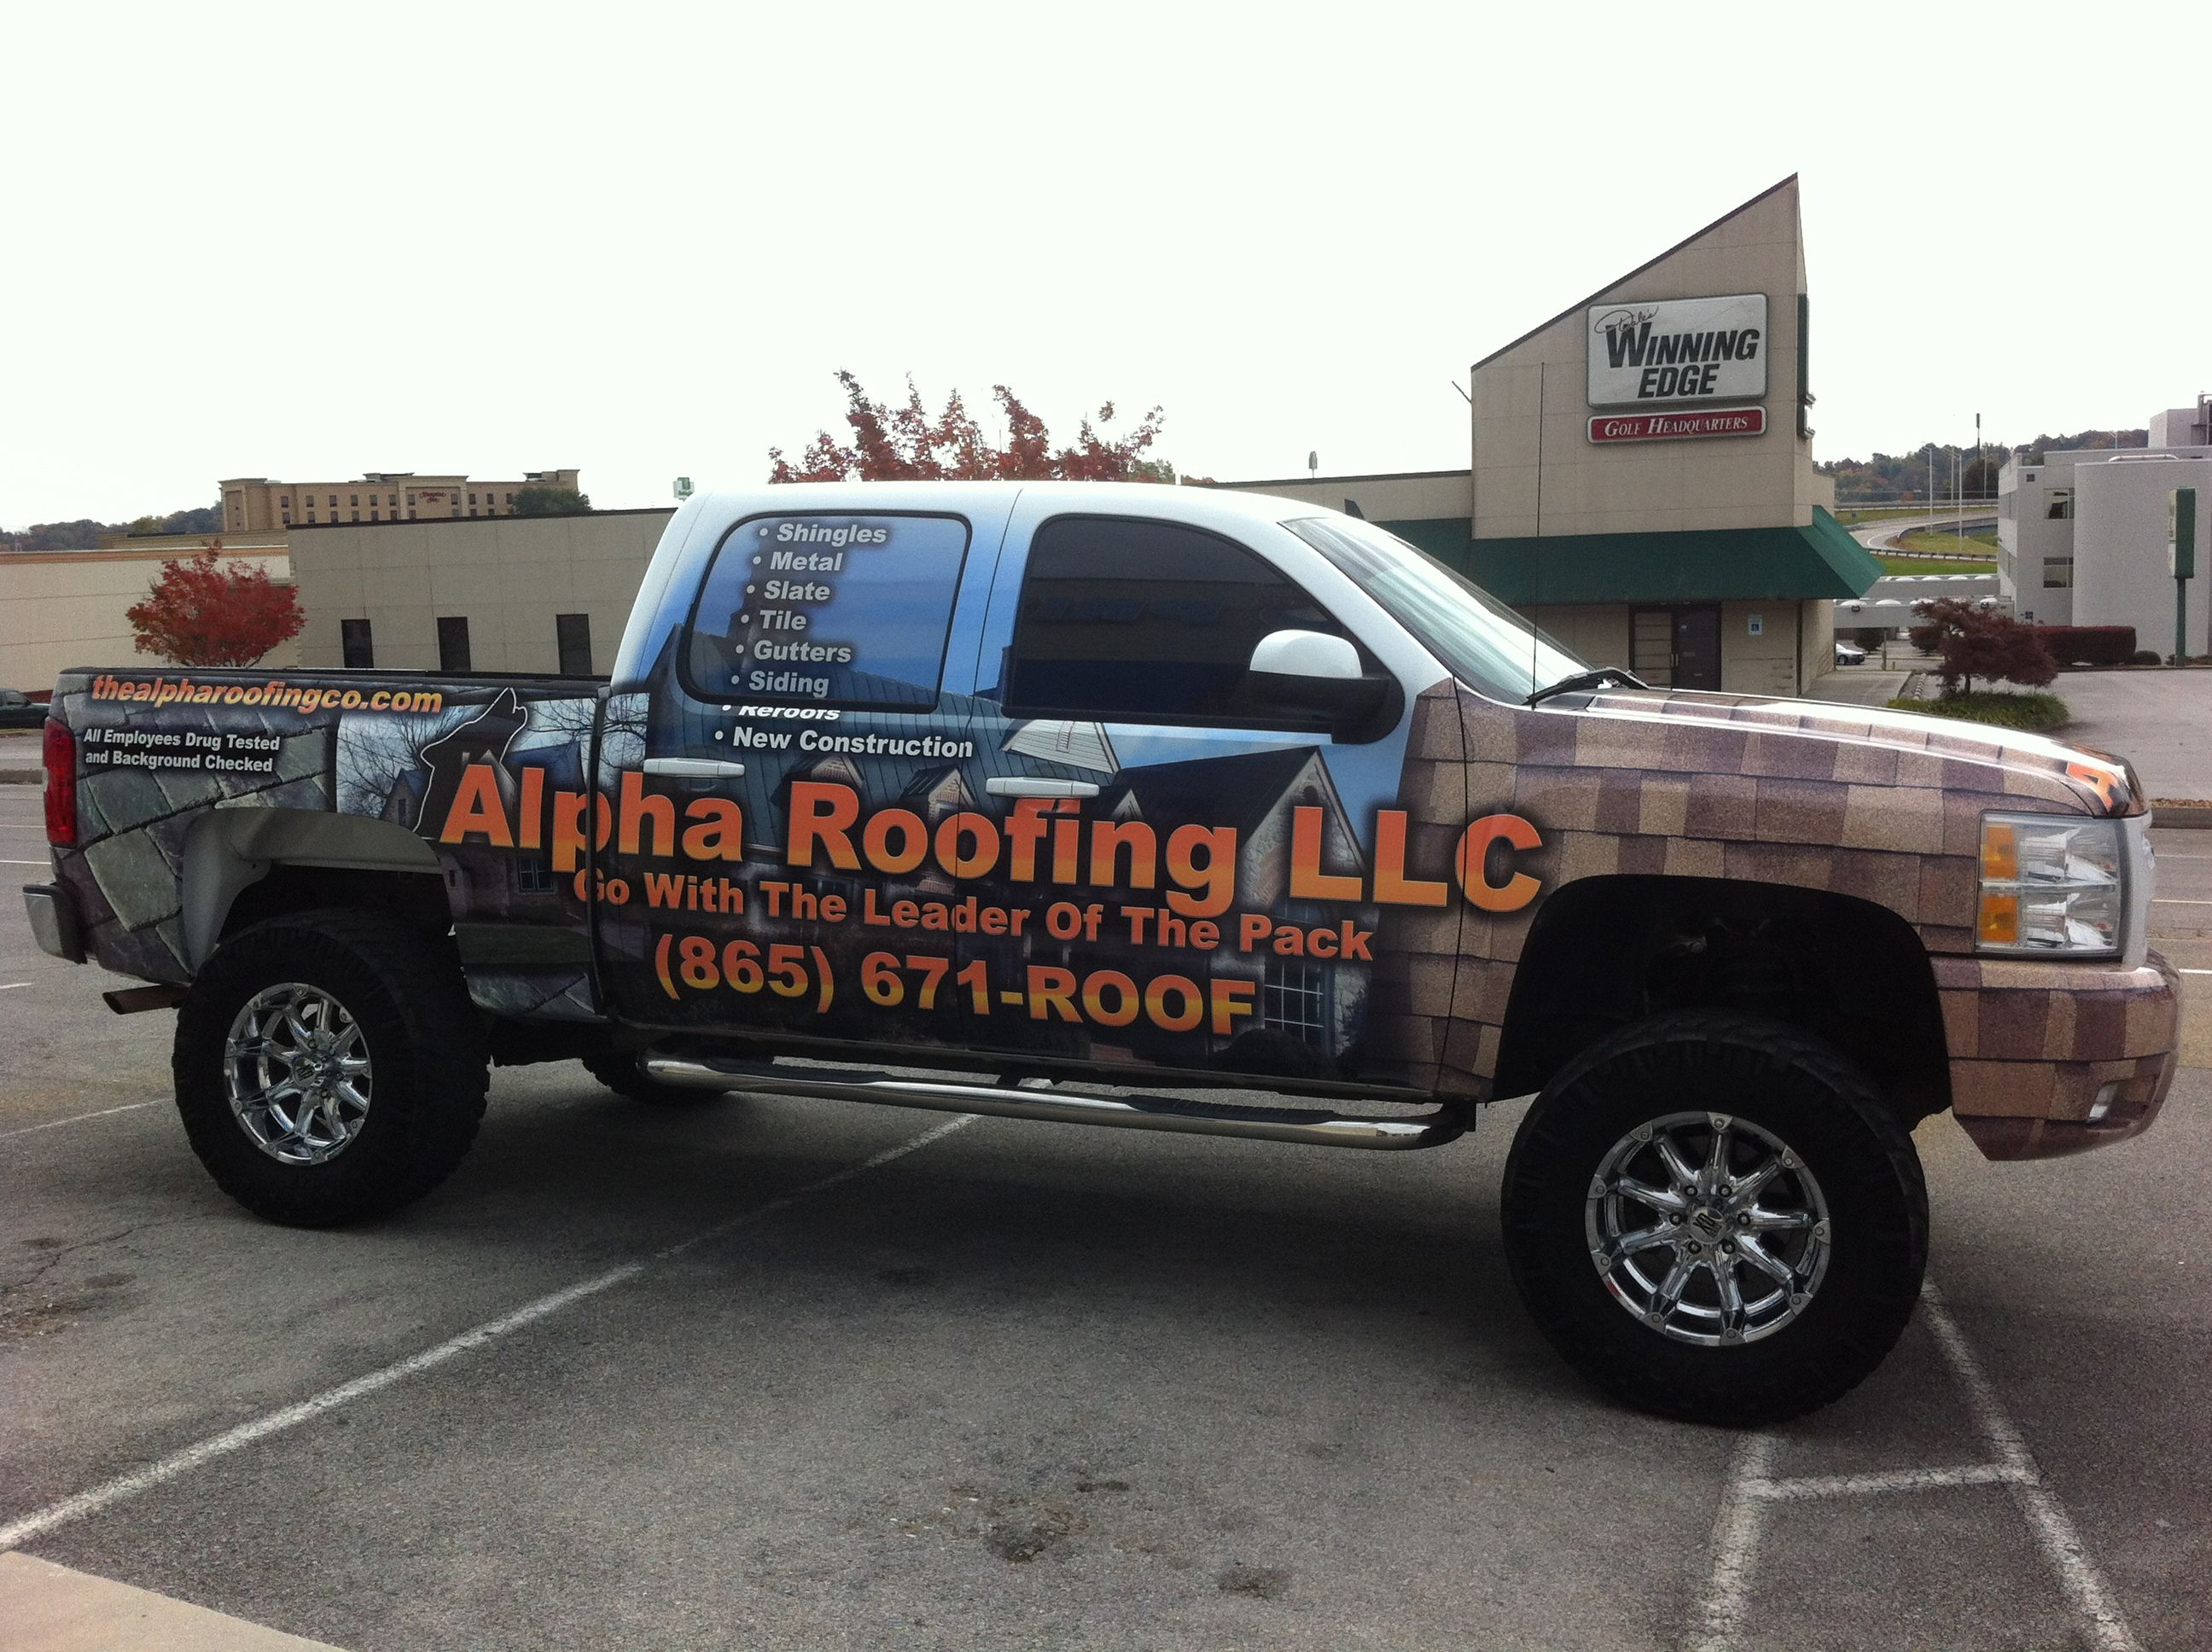 Alpha Roofing Vehicle Wrap 4 Knoxville, TN